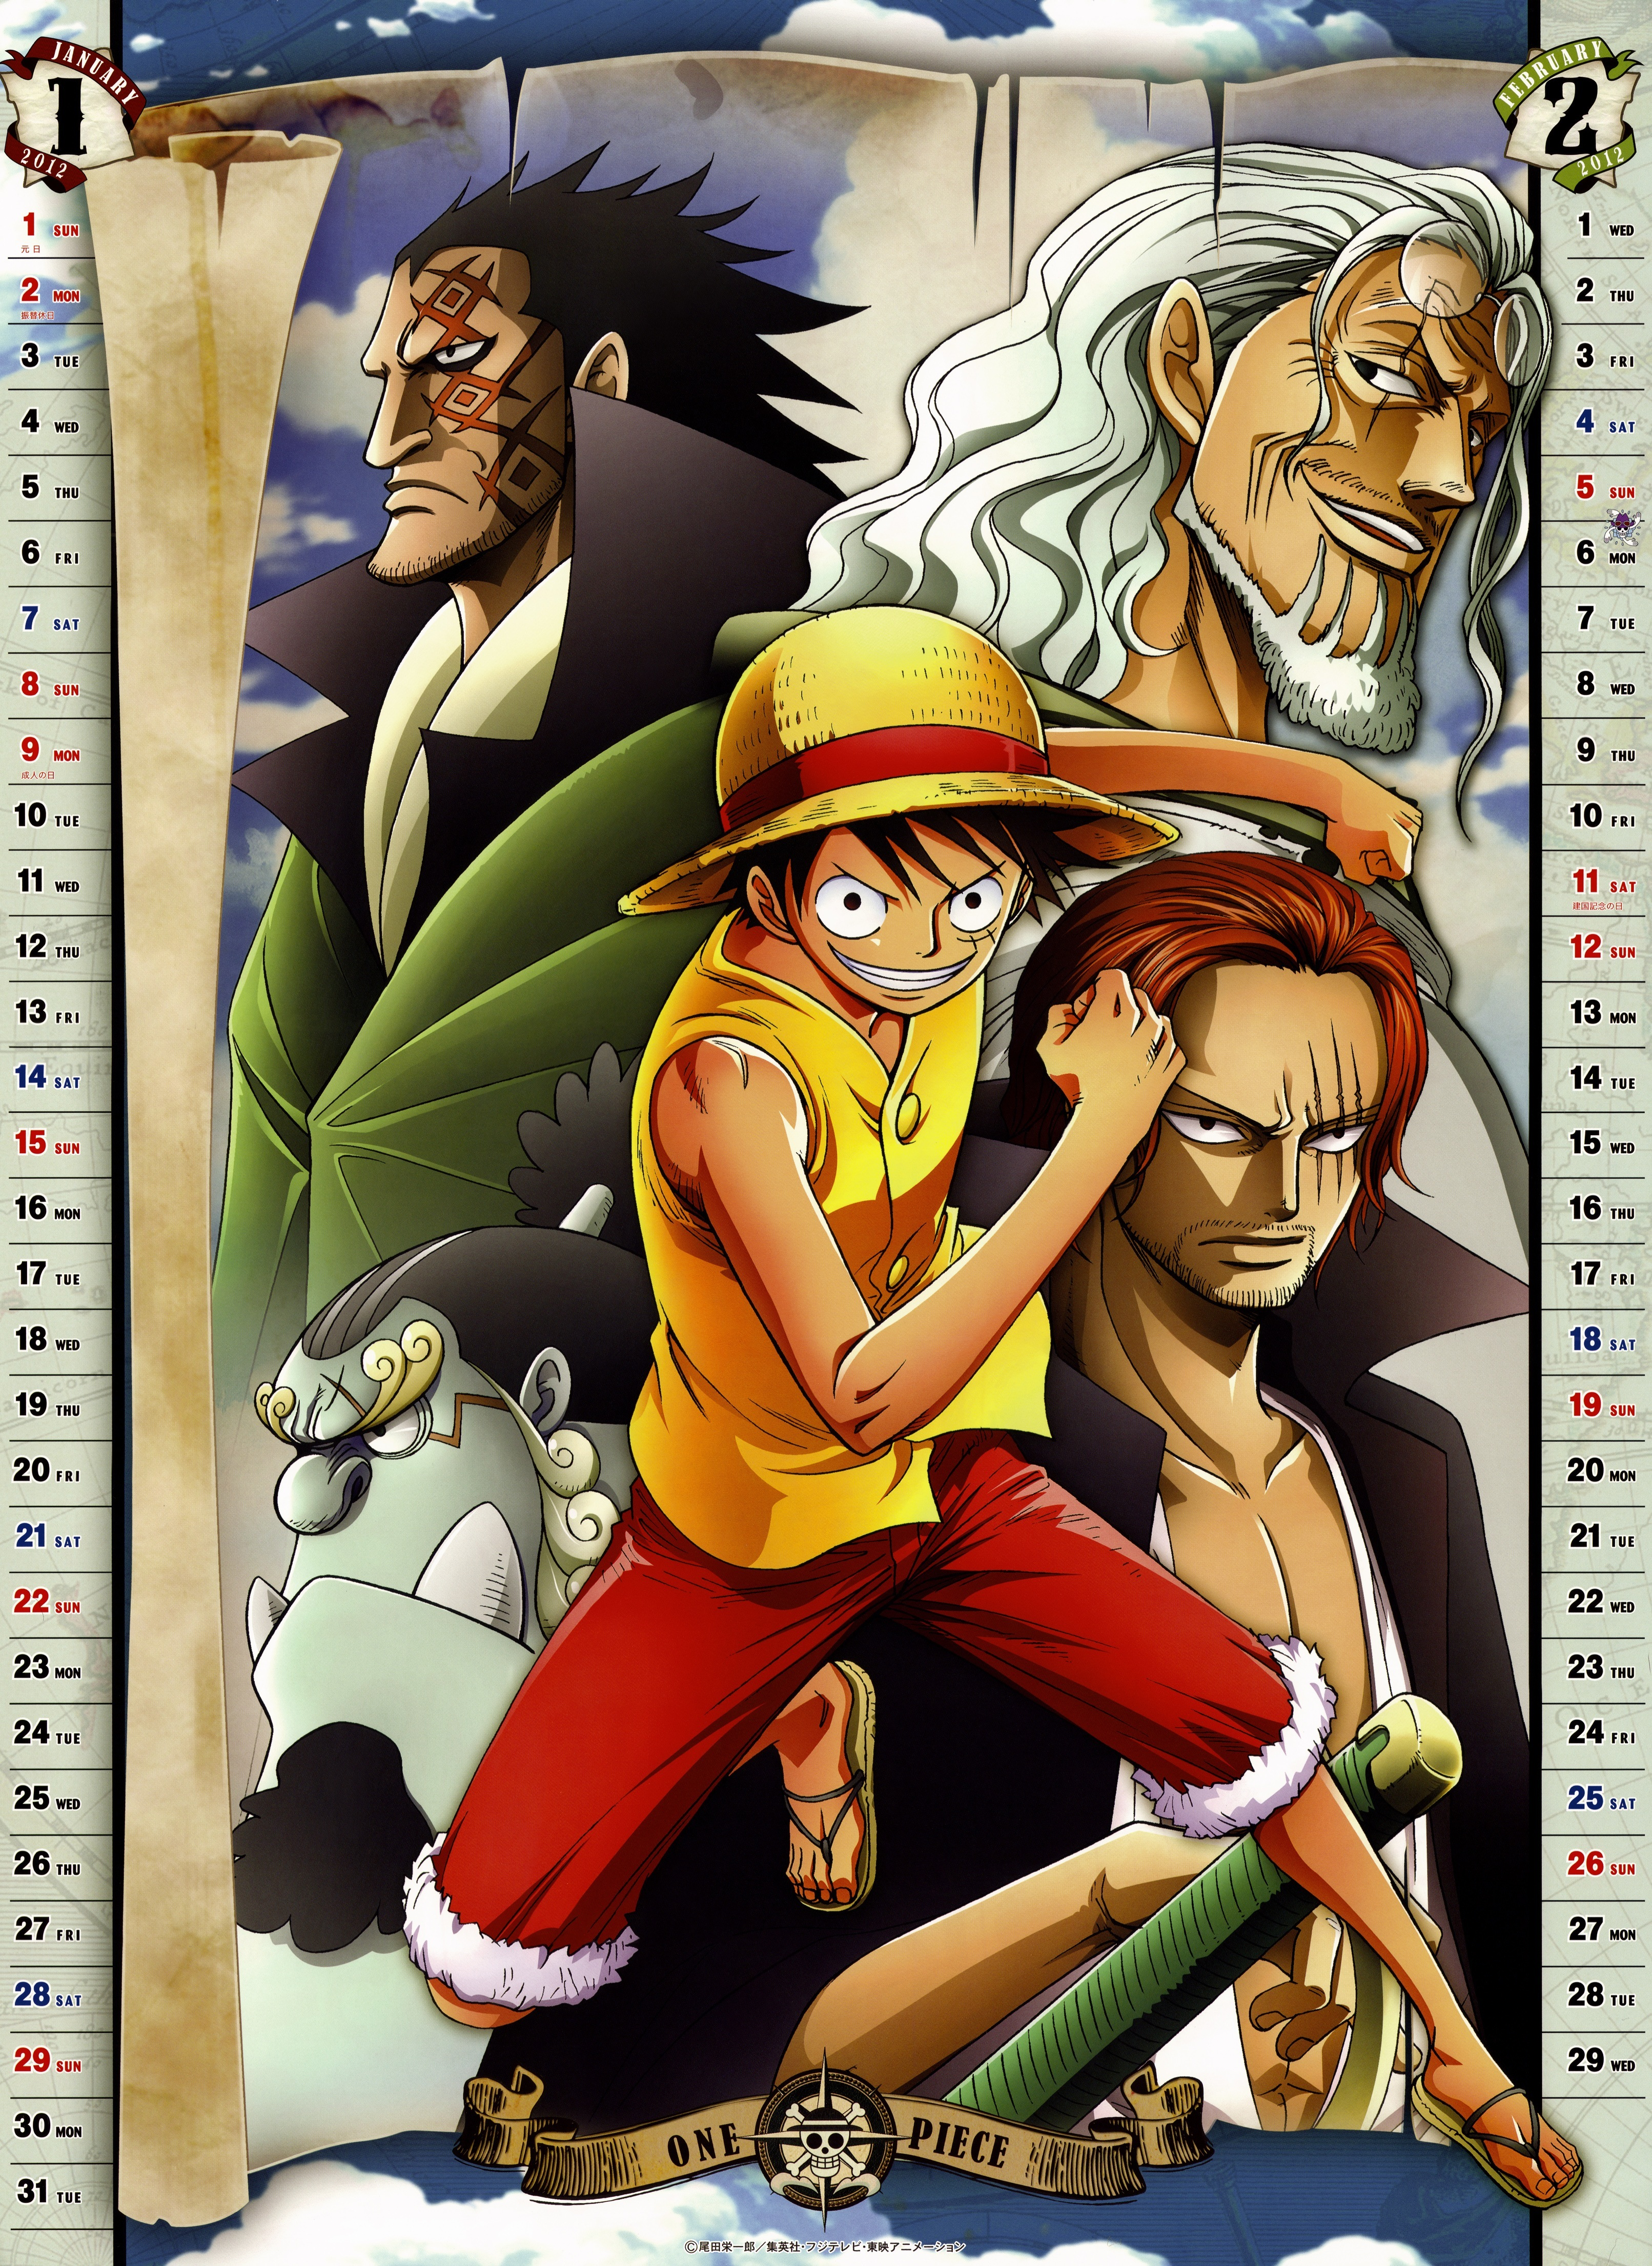 Onepiece ワンピース の2012年カレンダー壁紙 2012年1月と2月の